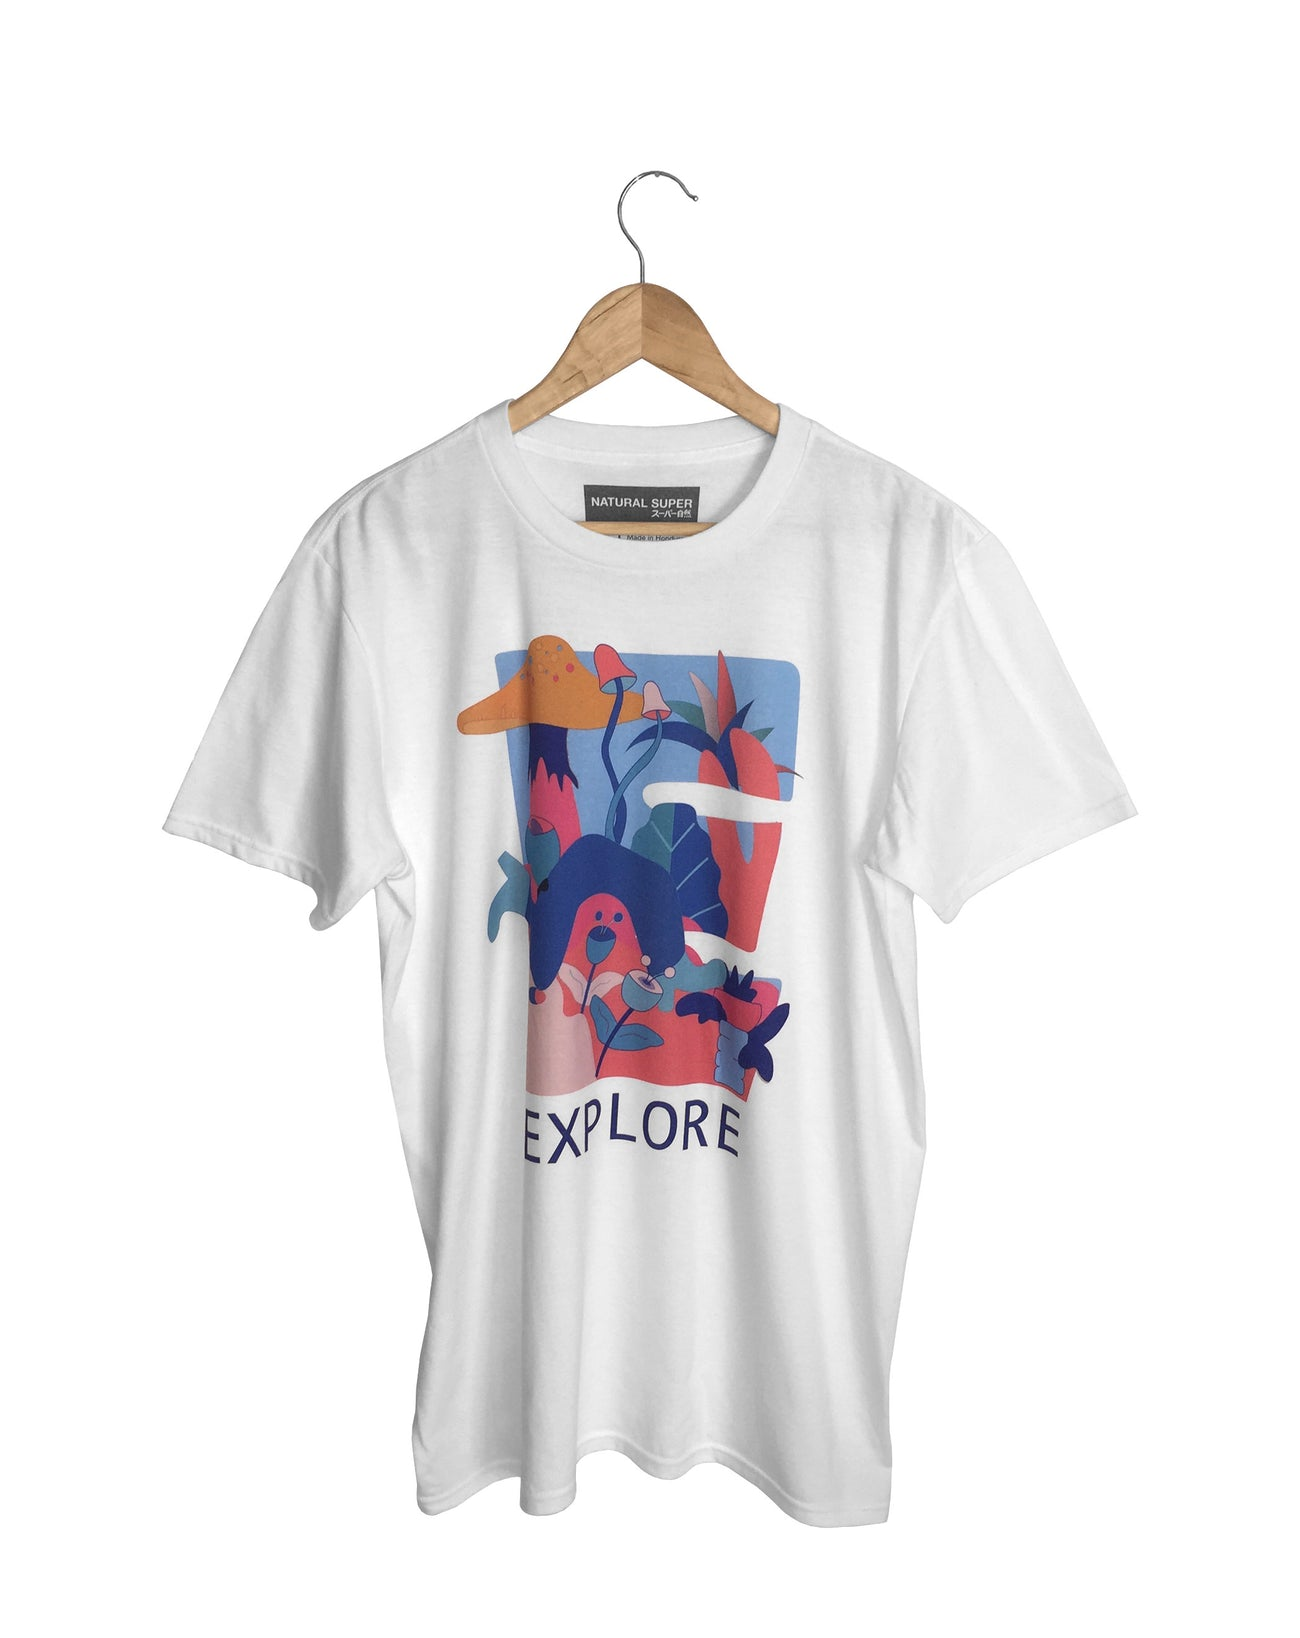 Explore by Nancy Kouta (unisex)